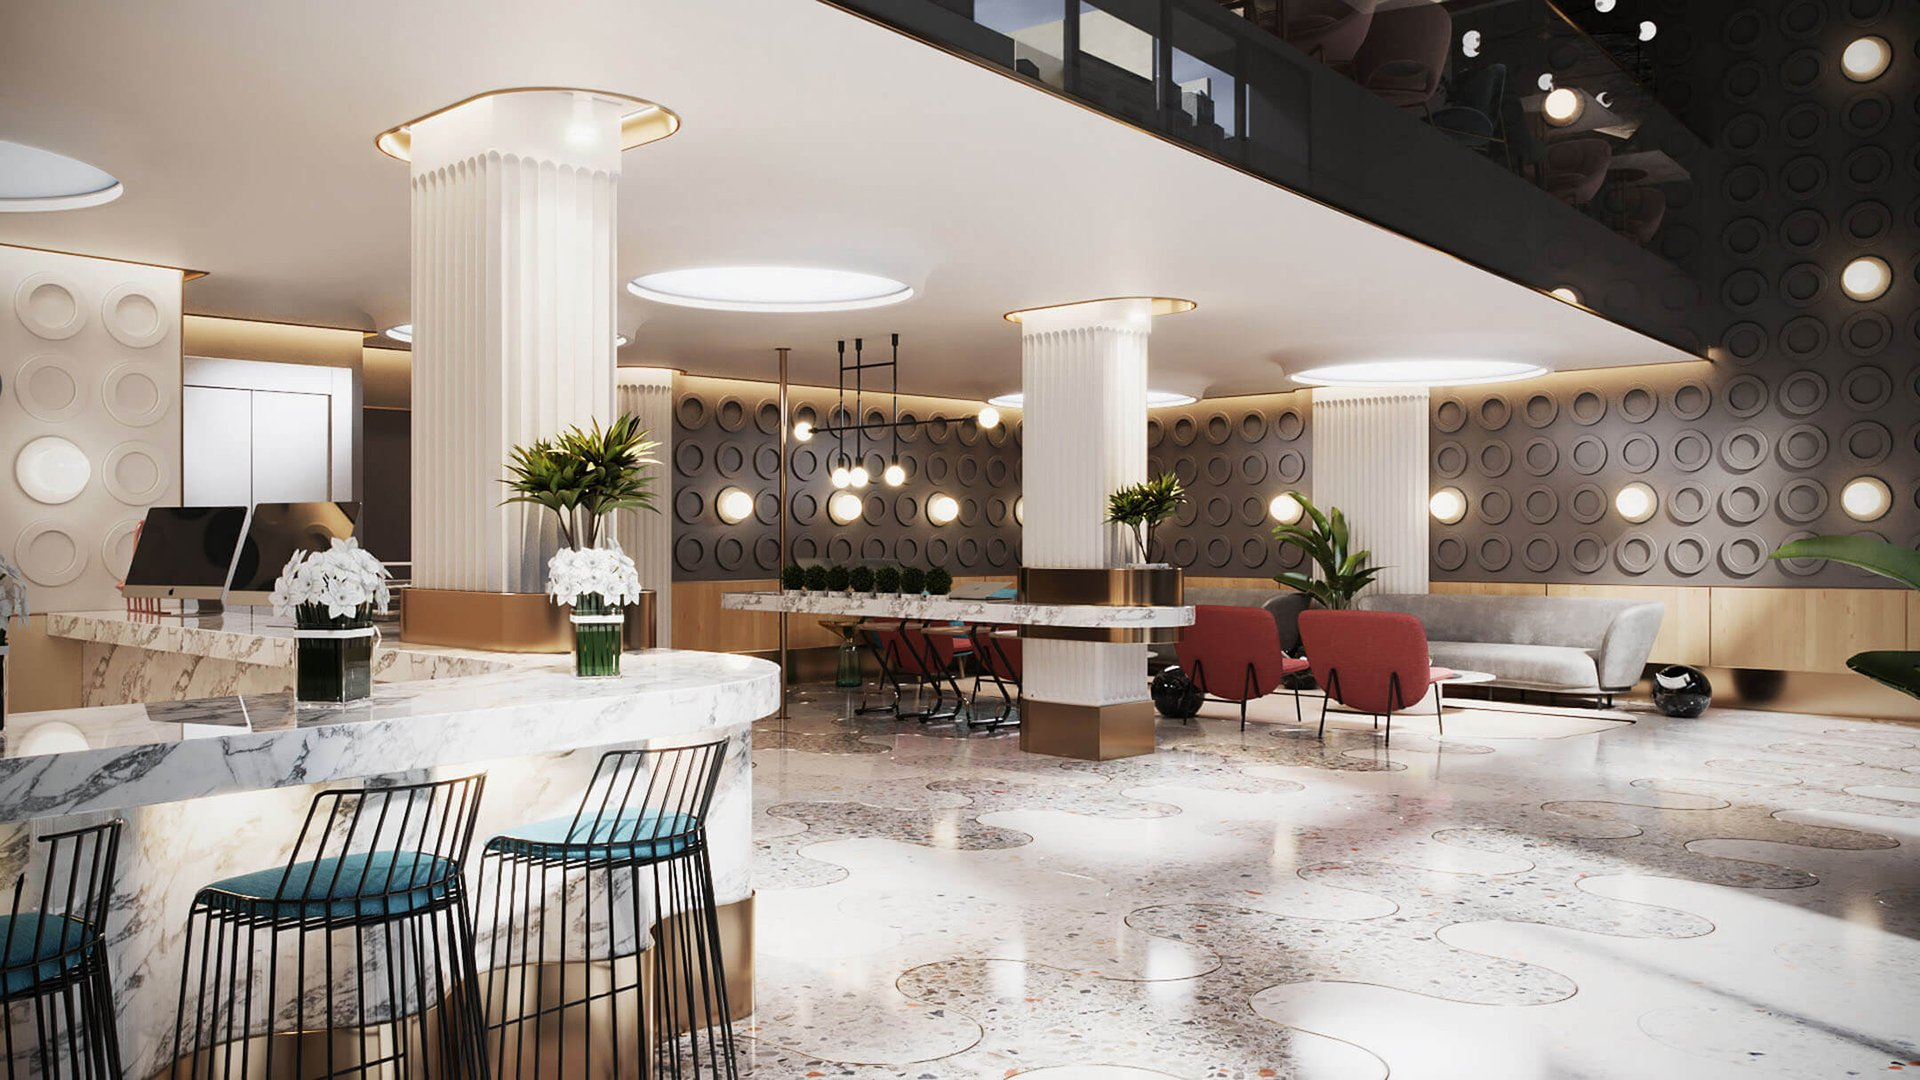 3D Interior Visualization of a Hotel's Lobby